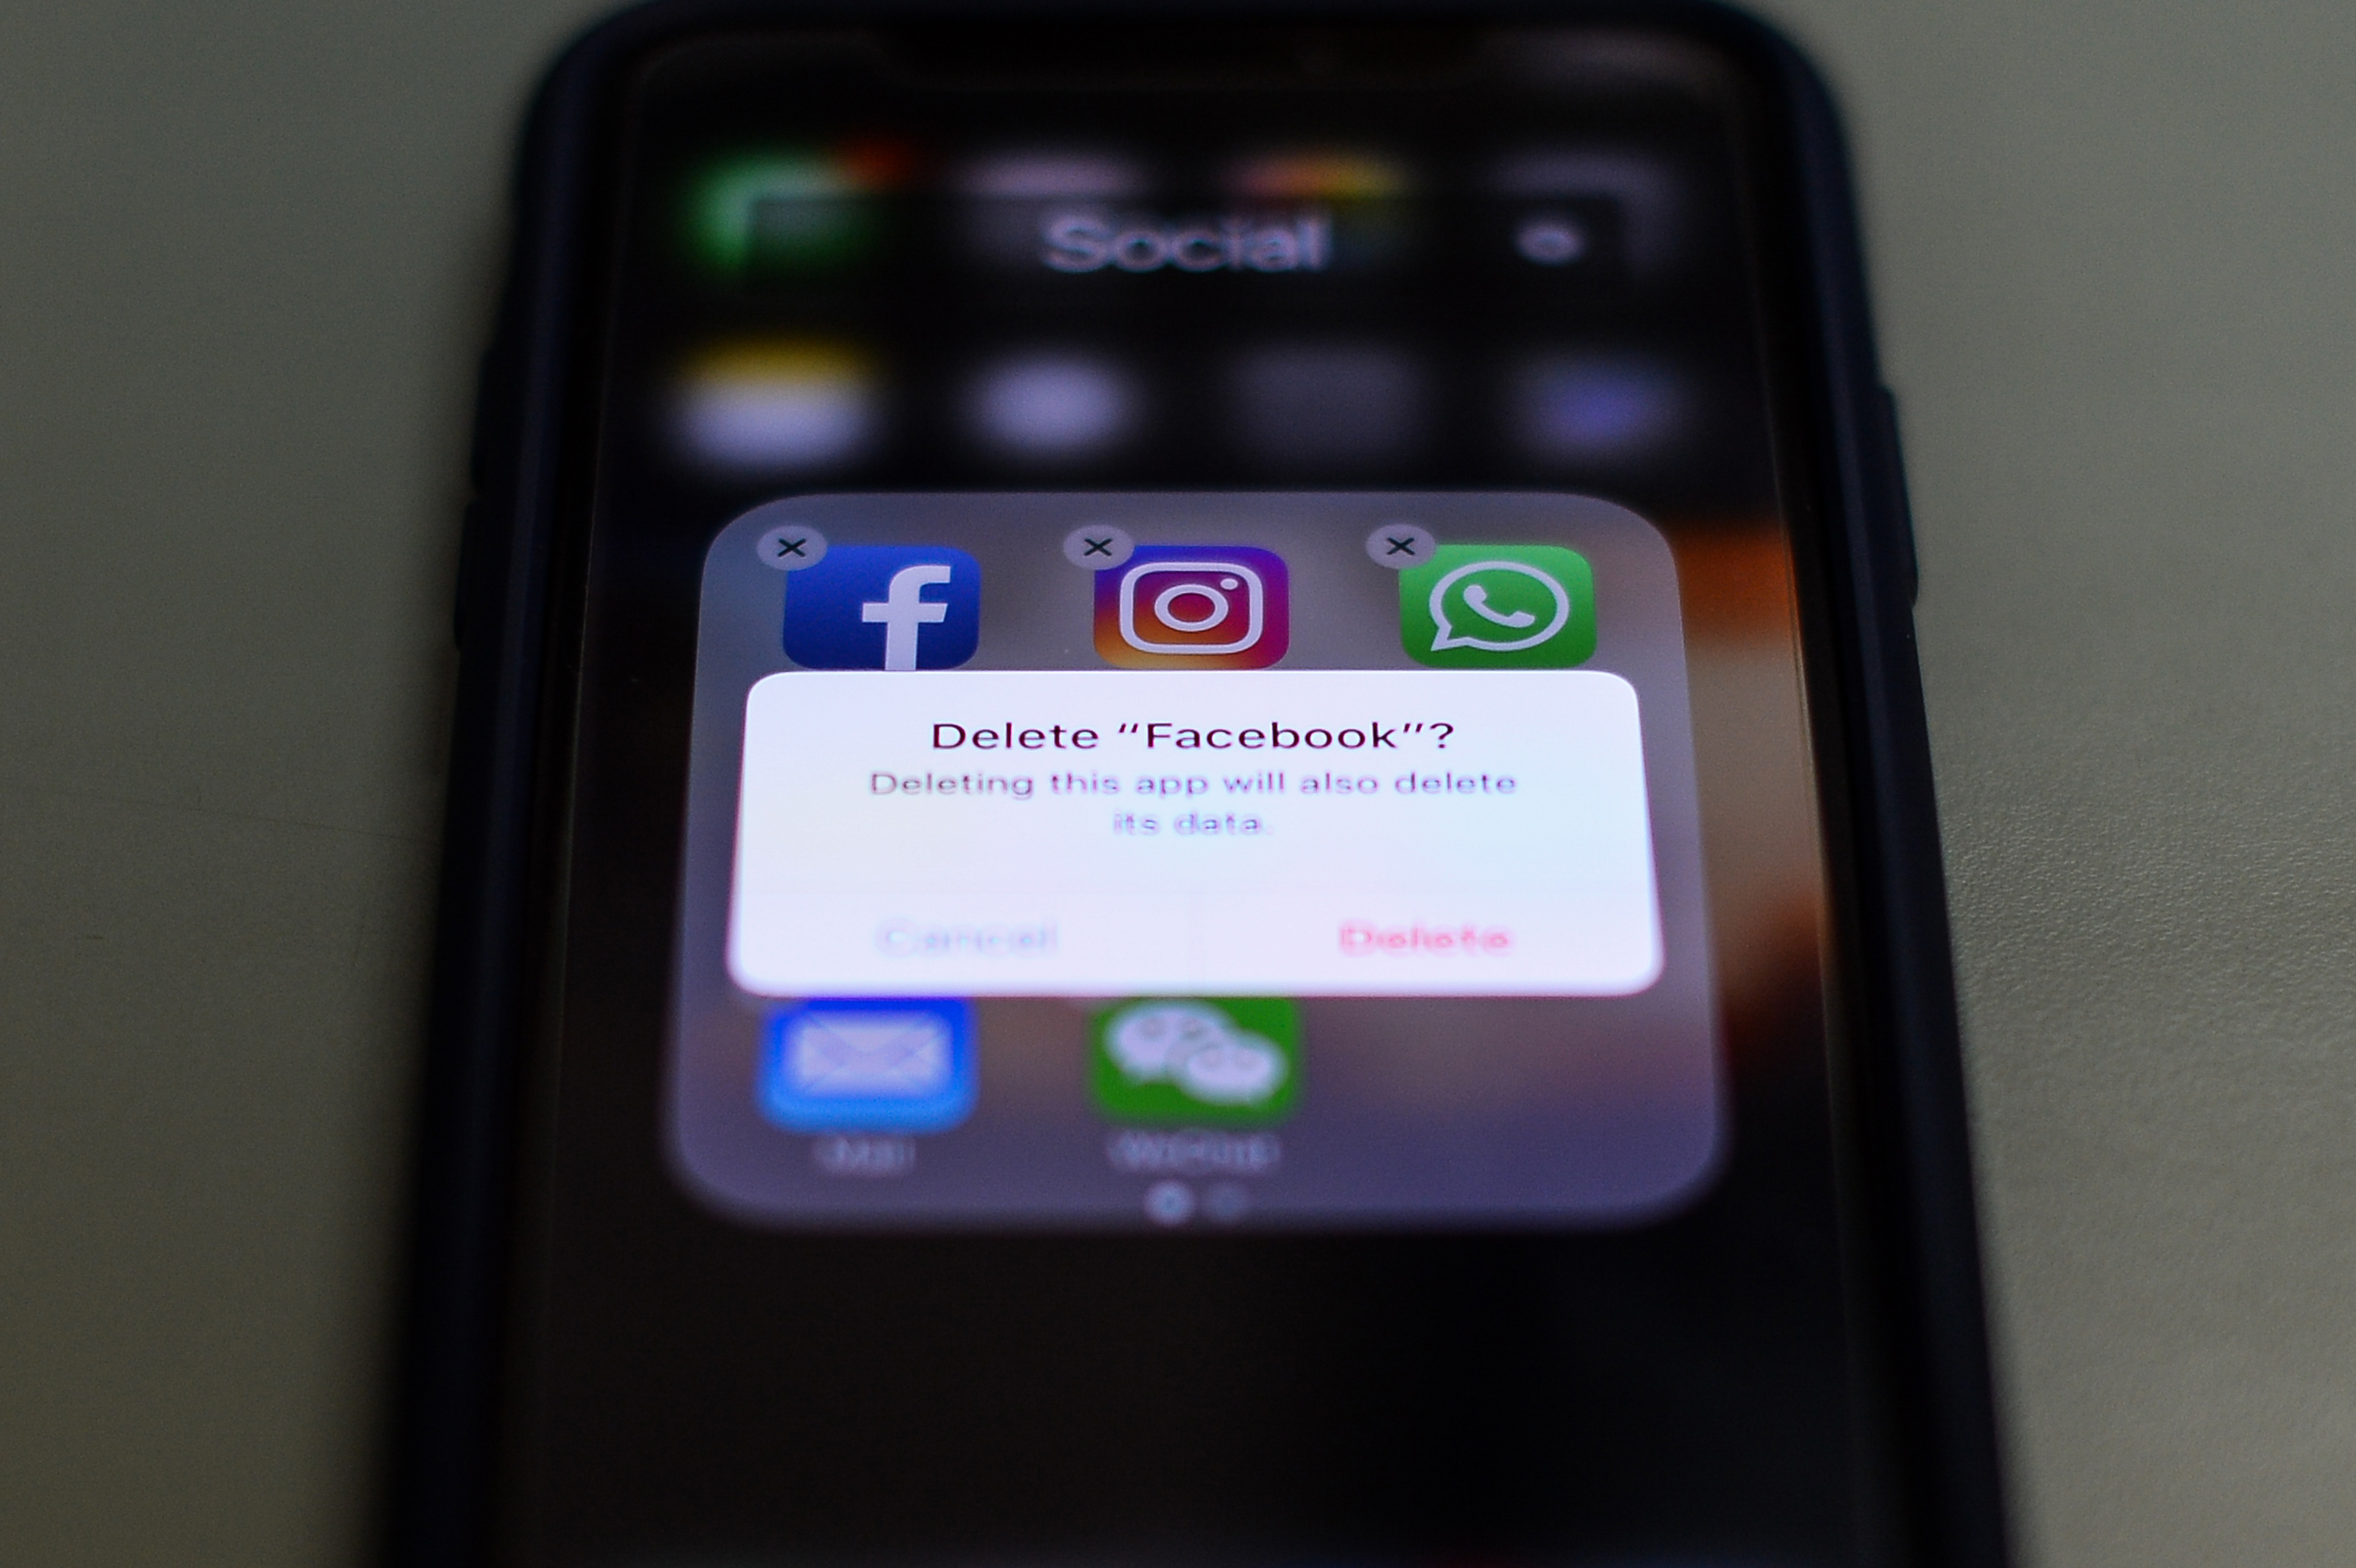 Delete Facebook options appears on iphone screen